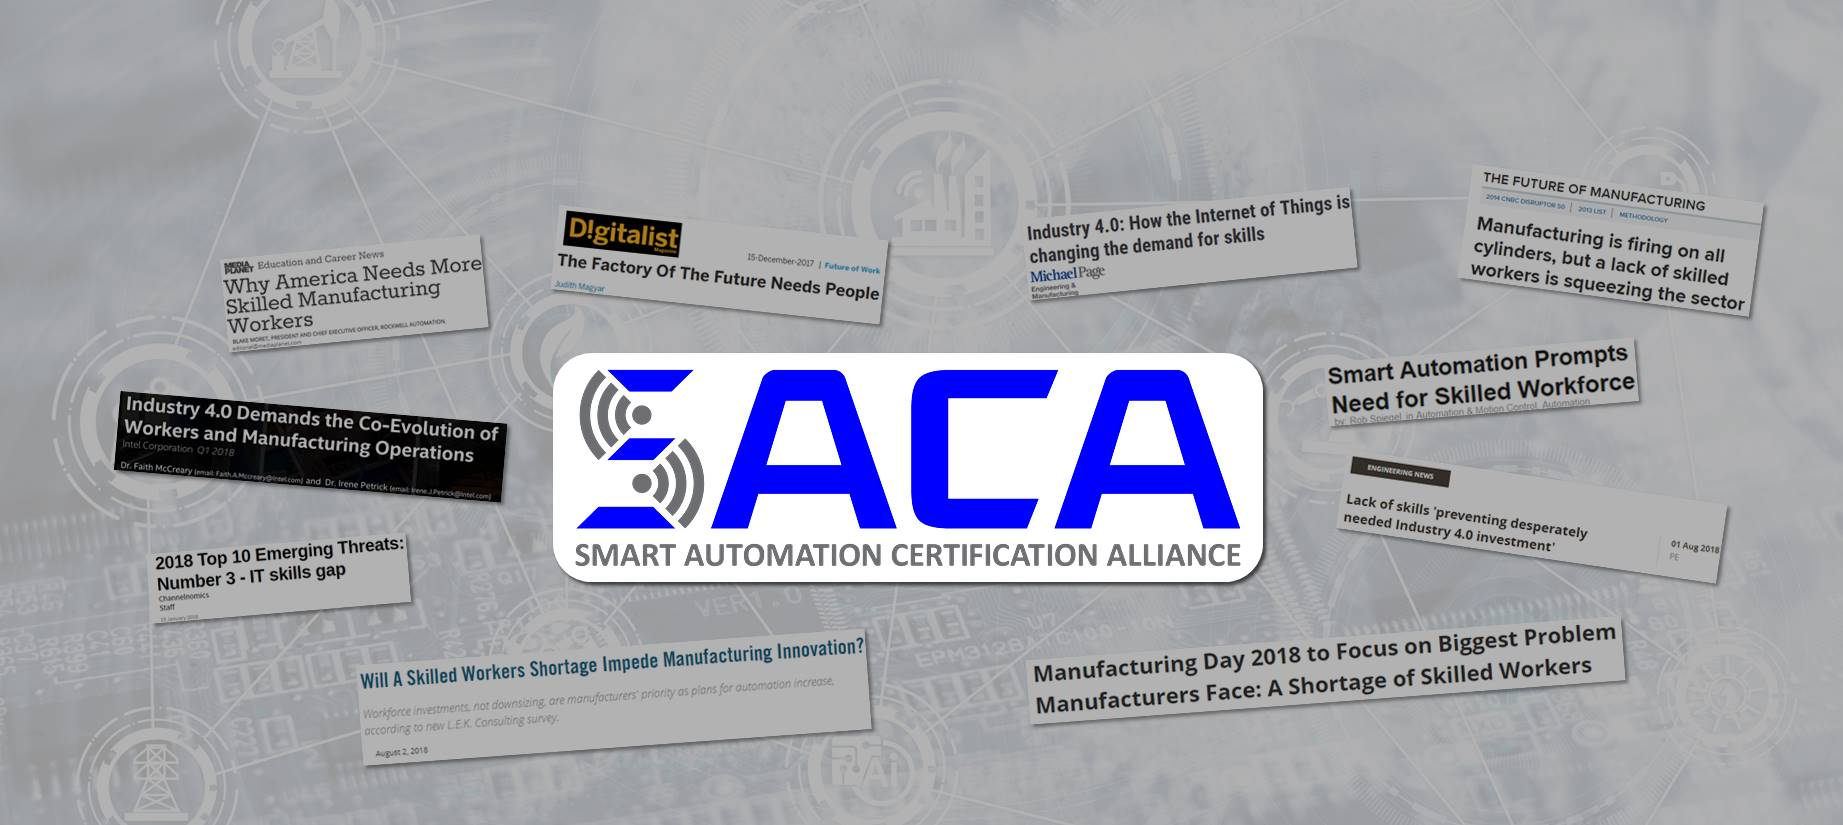 About Us - Smart Automation Certification Alliance (SACA)